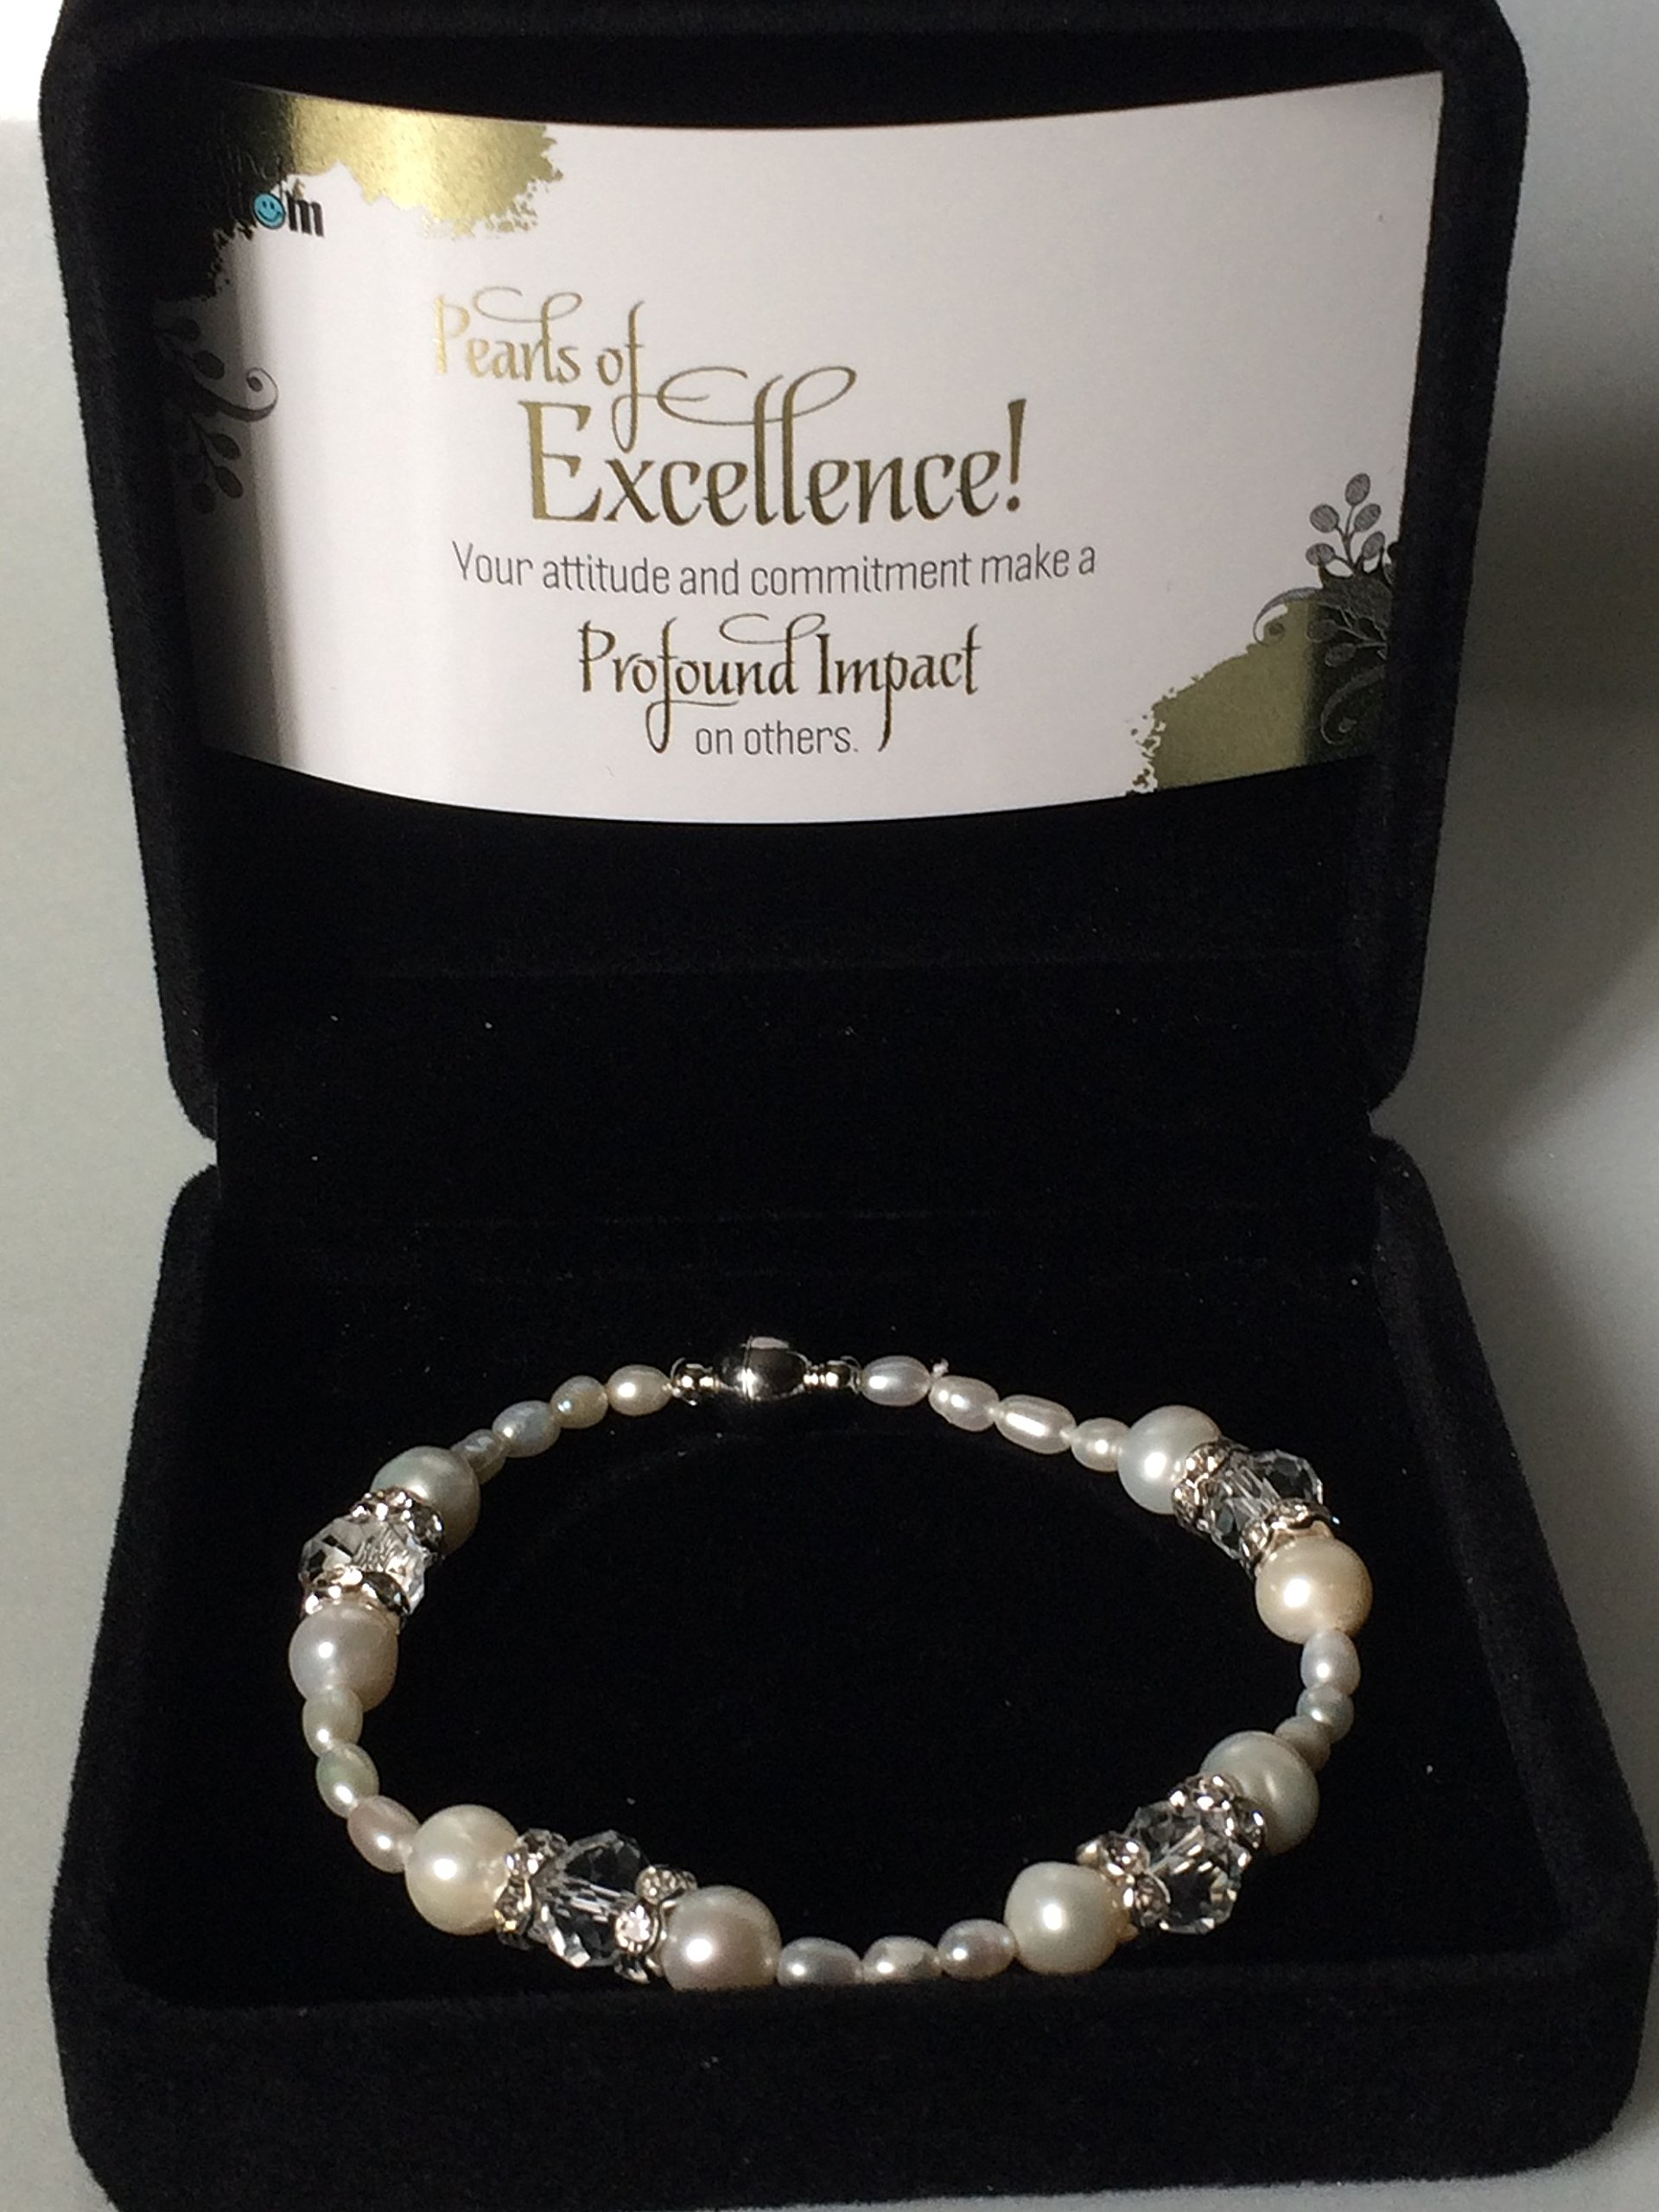 Smiling Wisdom - Pearls of Excellence Recognition Award - Freshwater Cultured Pearl - Her, Woman, Employees, Team Members, Students, Girls, Women, Rock Stars - Natural Pearl Color